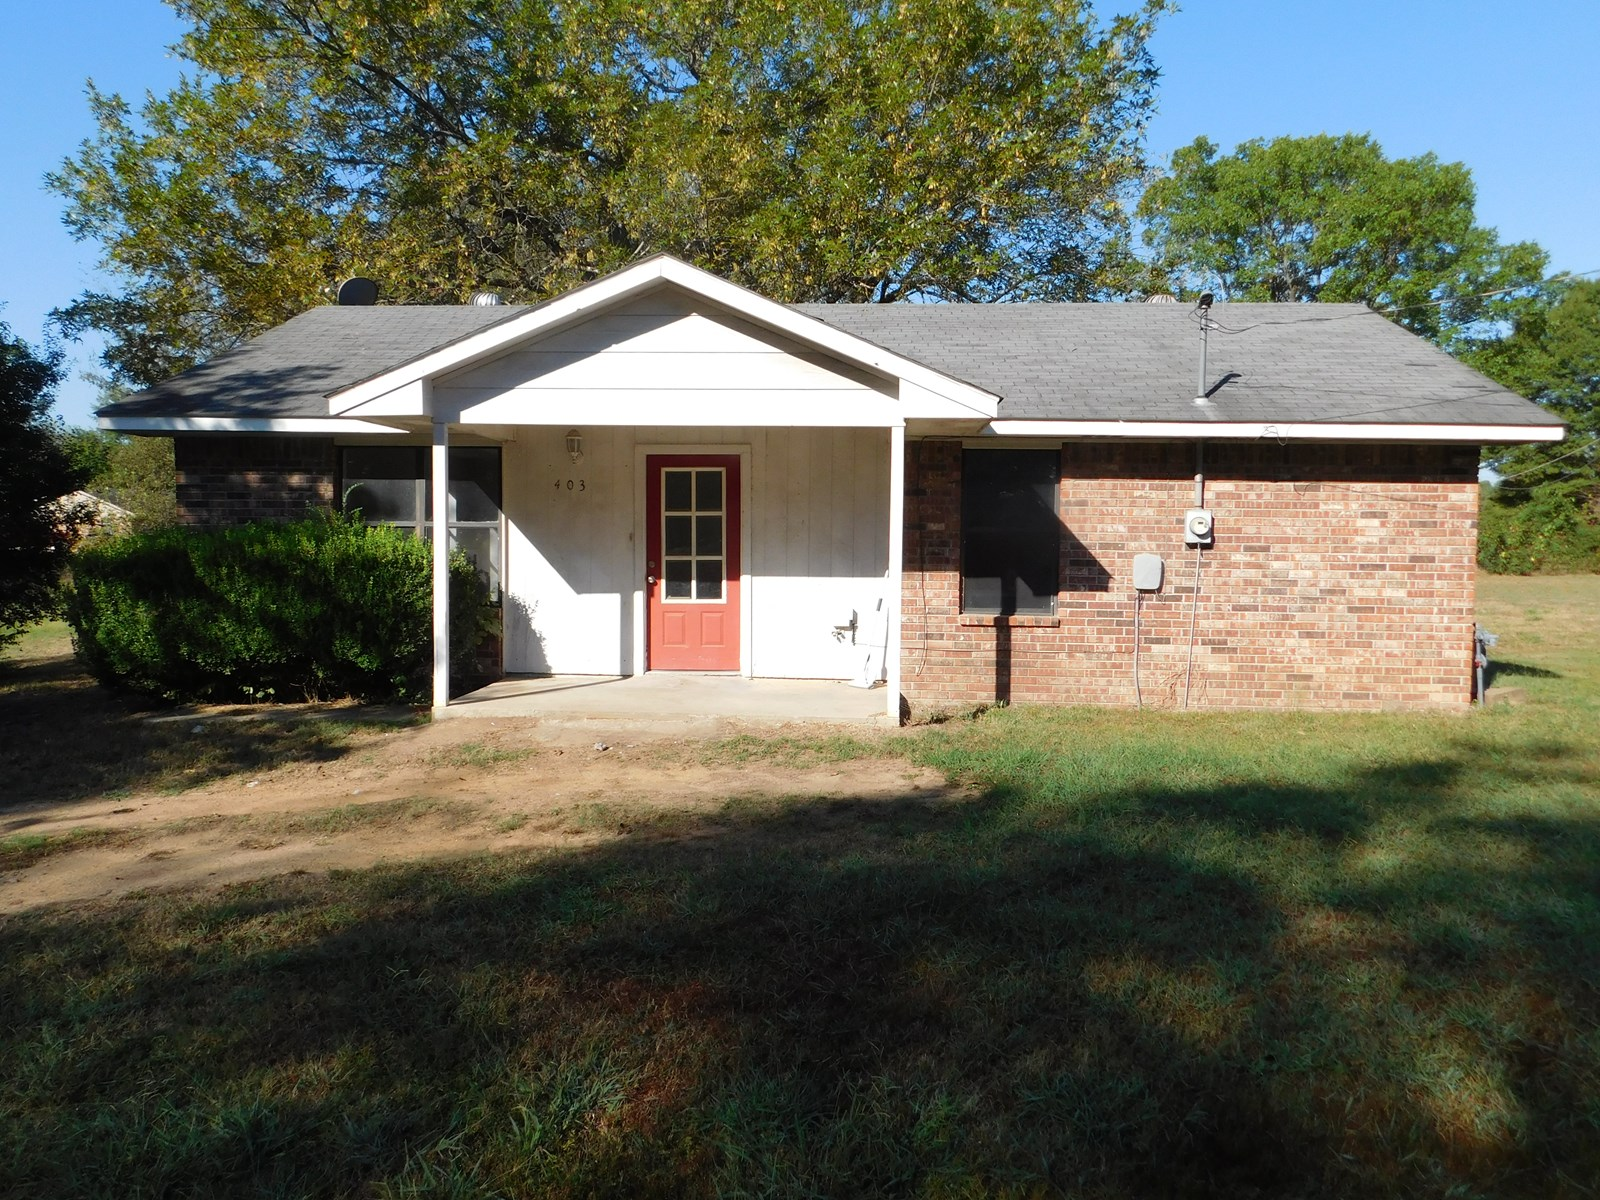 SMALL FAMILY HOME, INVESTMENT PROPERTY, GREAT STARTER HOME